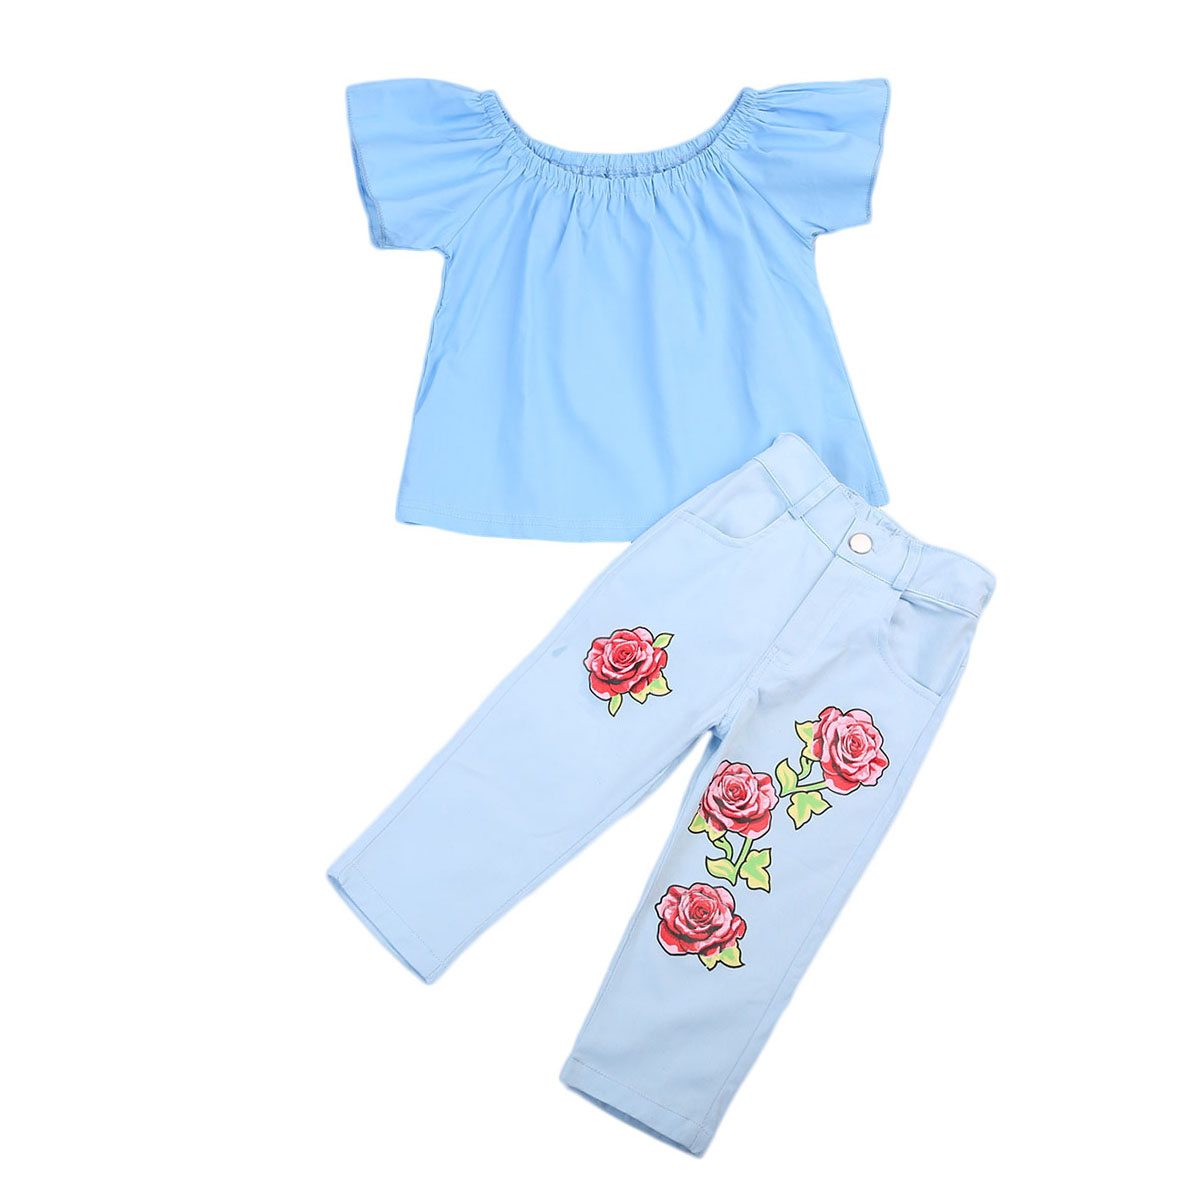 2017 New summer 2Pcs Kids Baby Girl Outfits Off Shoulder T-shirt Tops+Long Pants Jeans Clothing Set